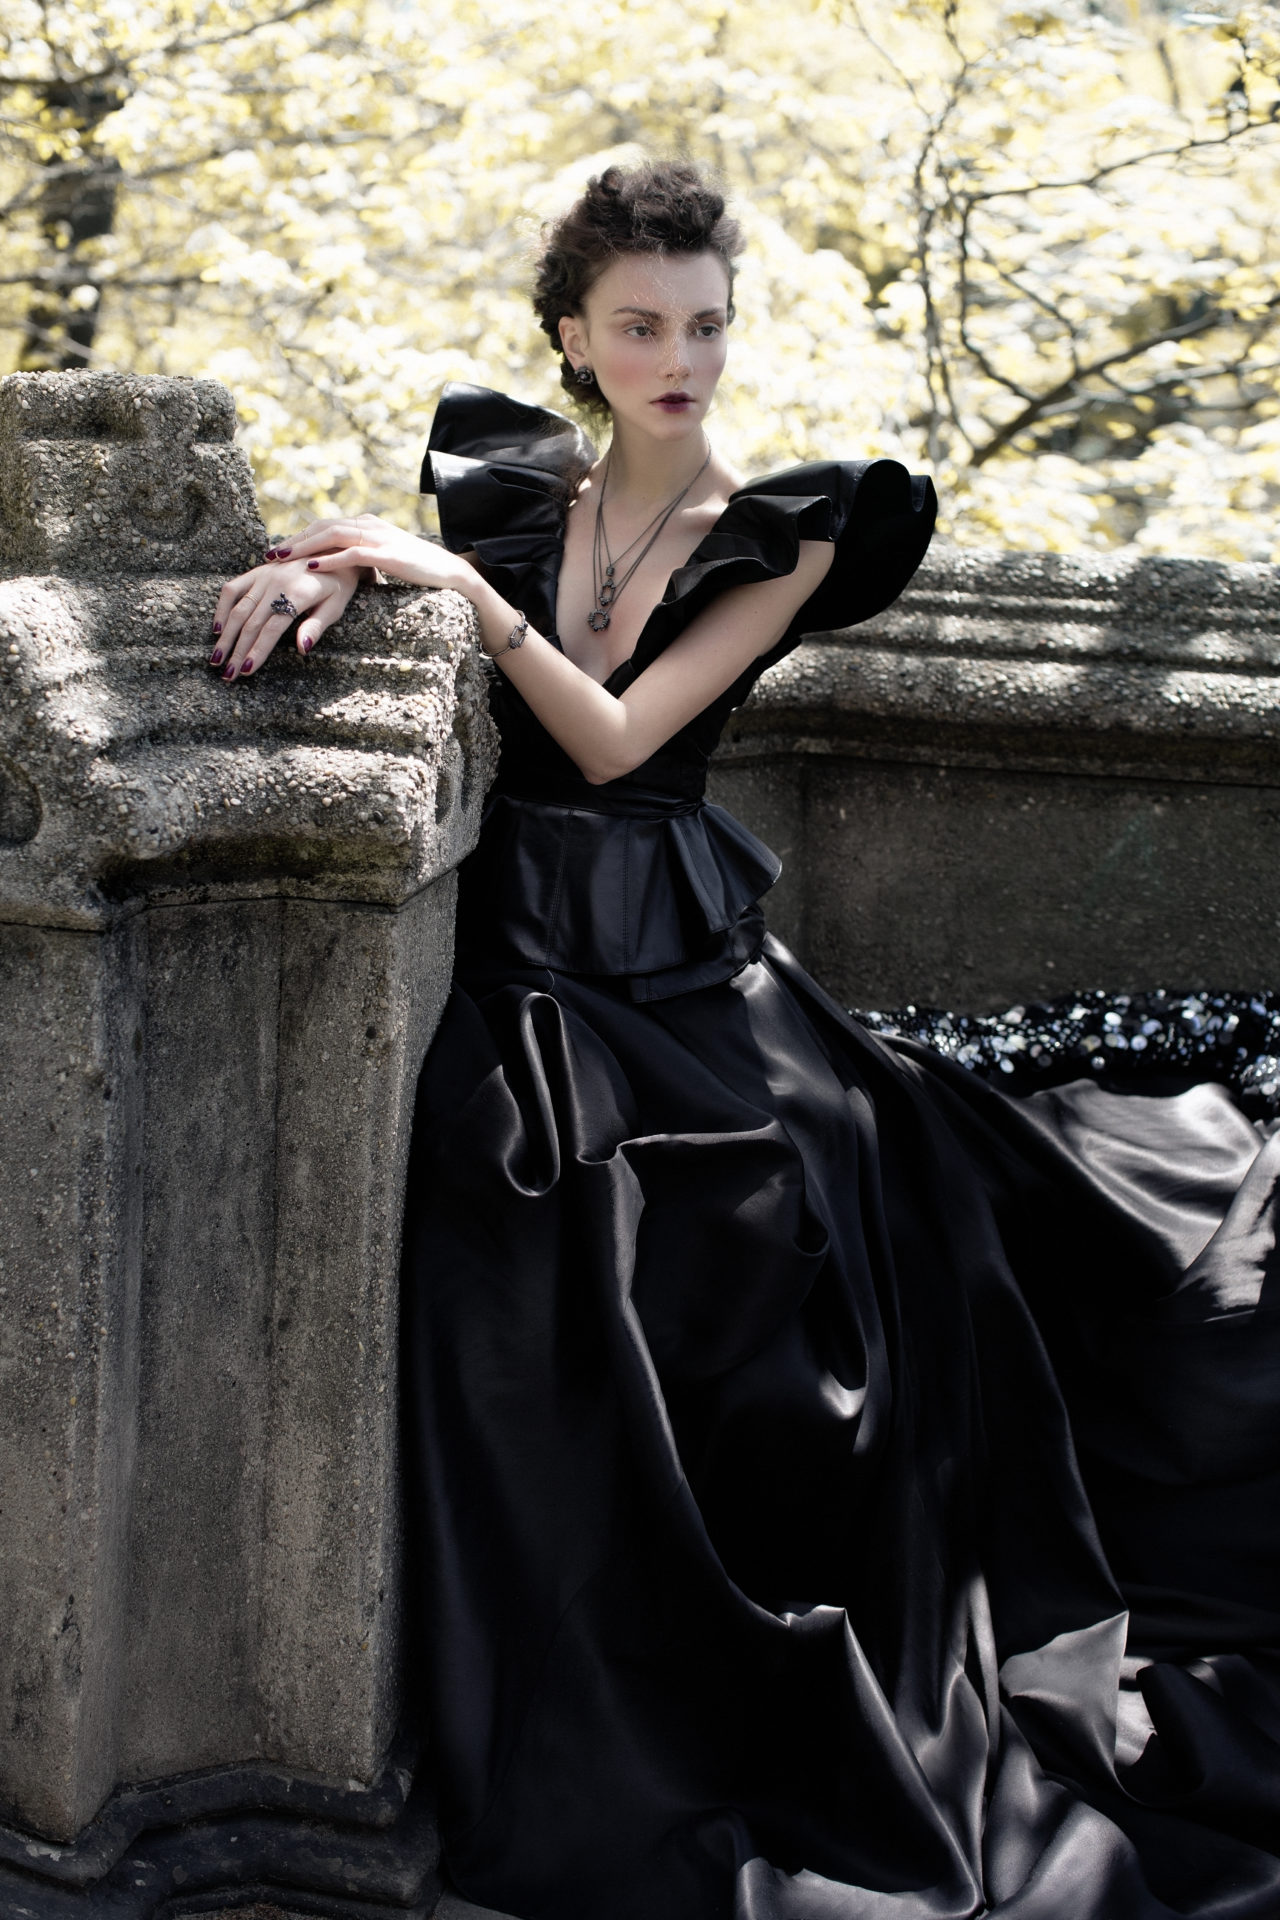 ) Top≤ather skirt - Leka. Dress with sequins- Basix. Neckless, earrings, rings, bracelet - Solomeina